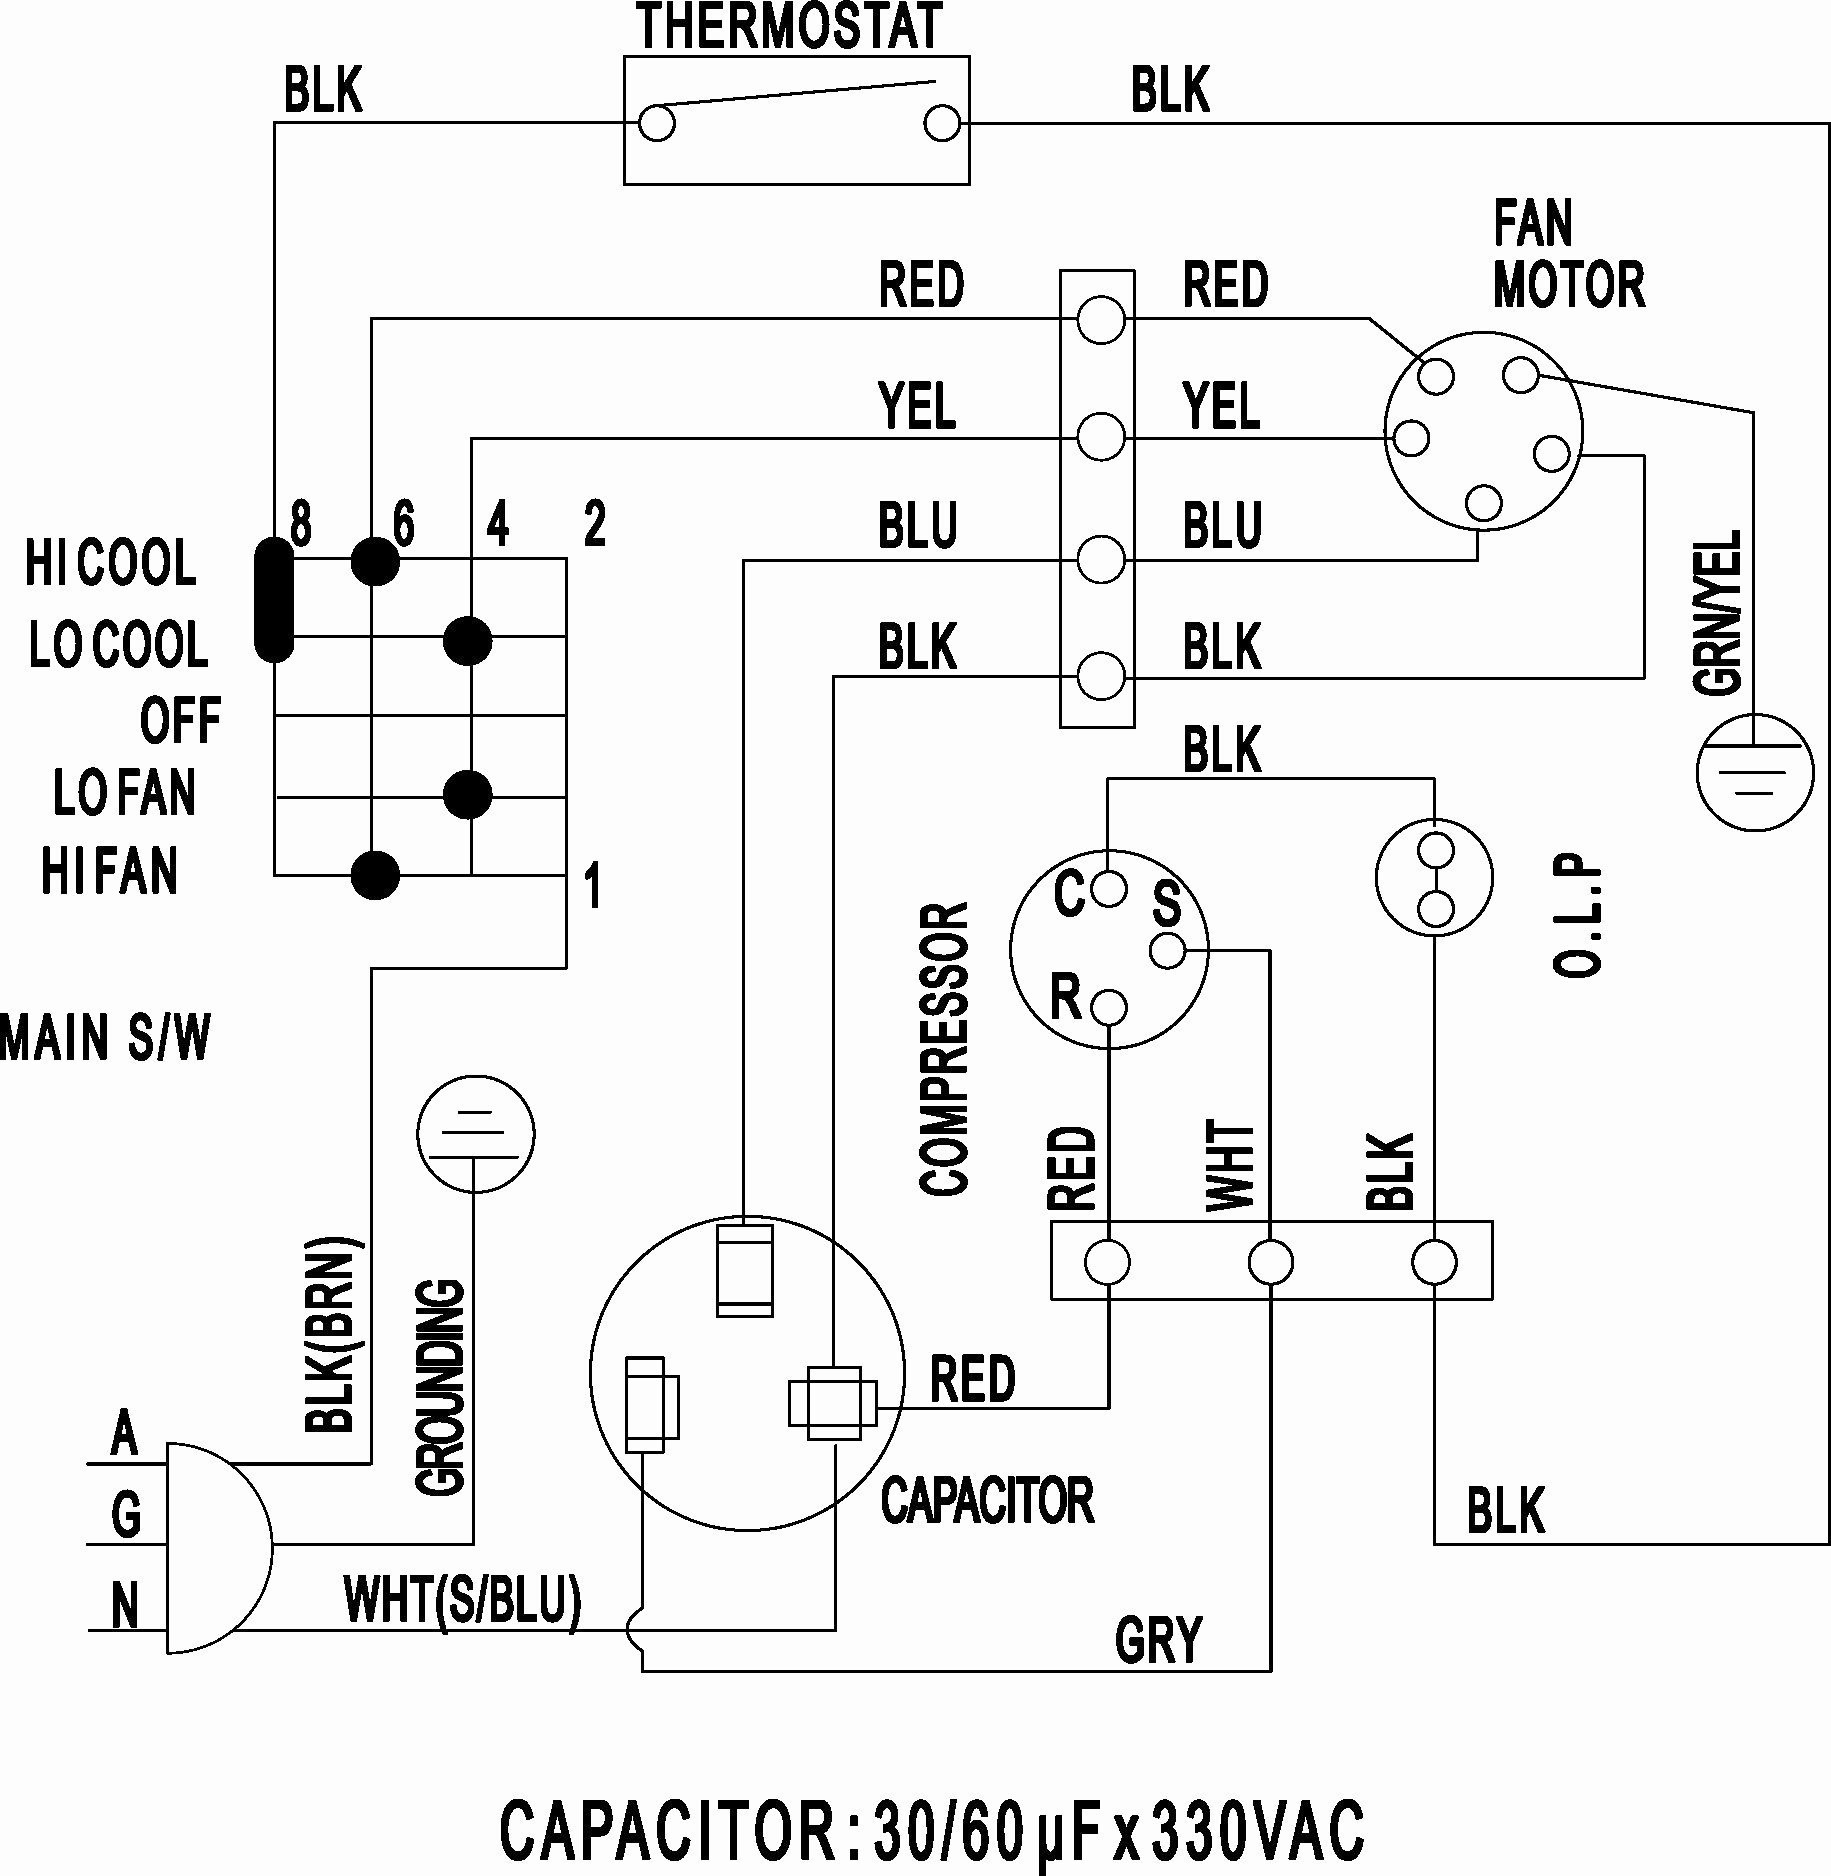 wiring aac thermostat wiring diagram directory  wiring aac thermostat #9